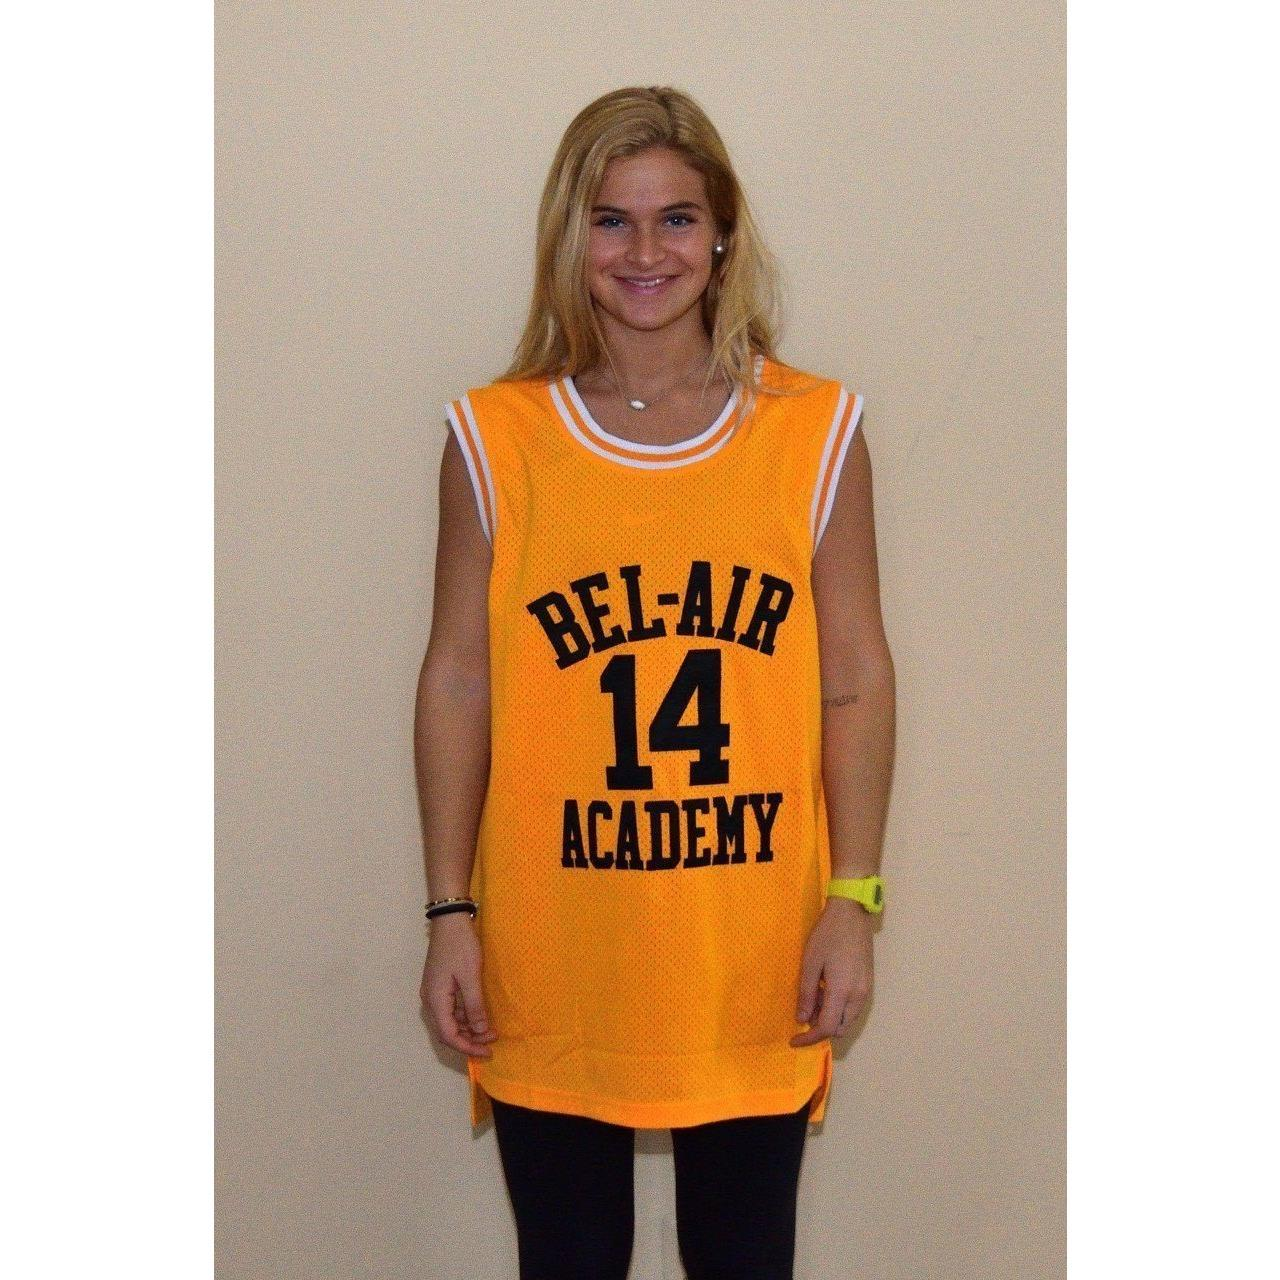 520cfaa57993 Will Smith 14 Bel Air Academy Basketball Jersey Stitched - Jersey Champs